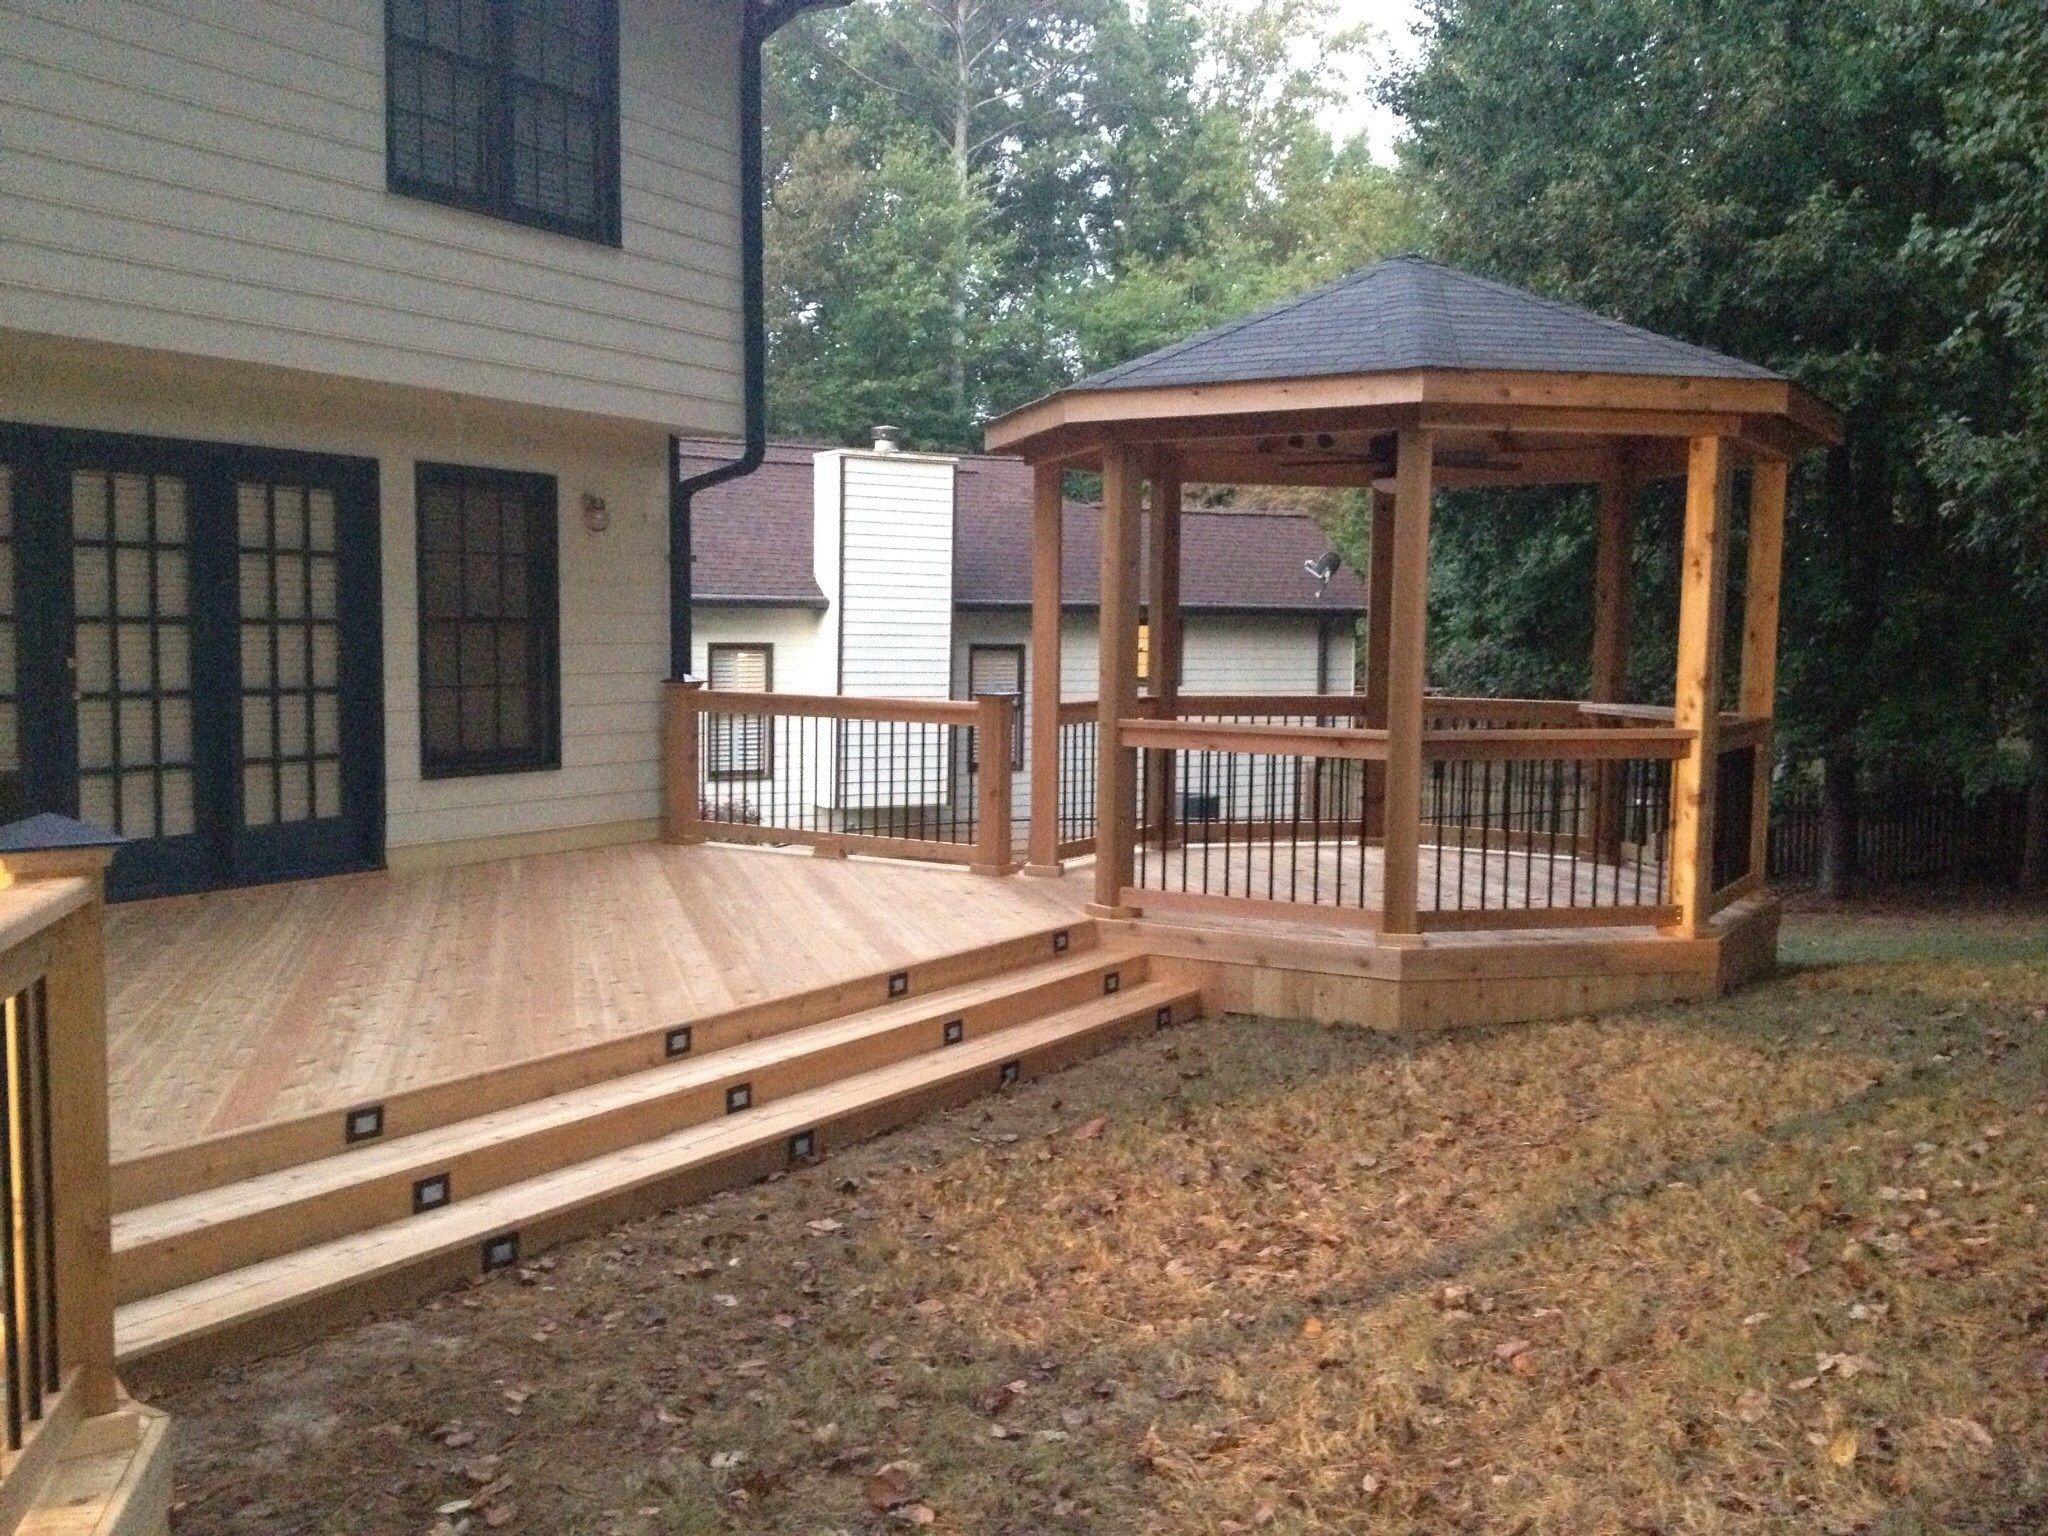 Deck and gazebo - Picture 1199